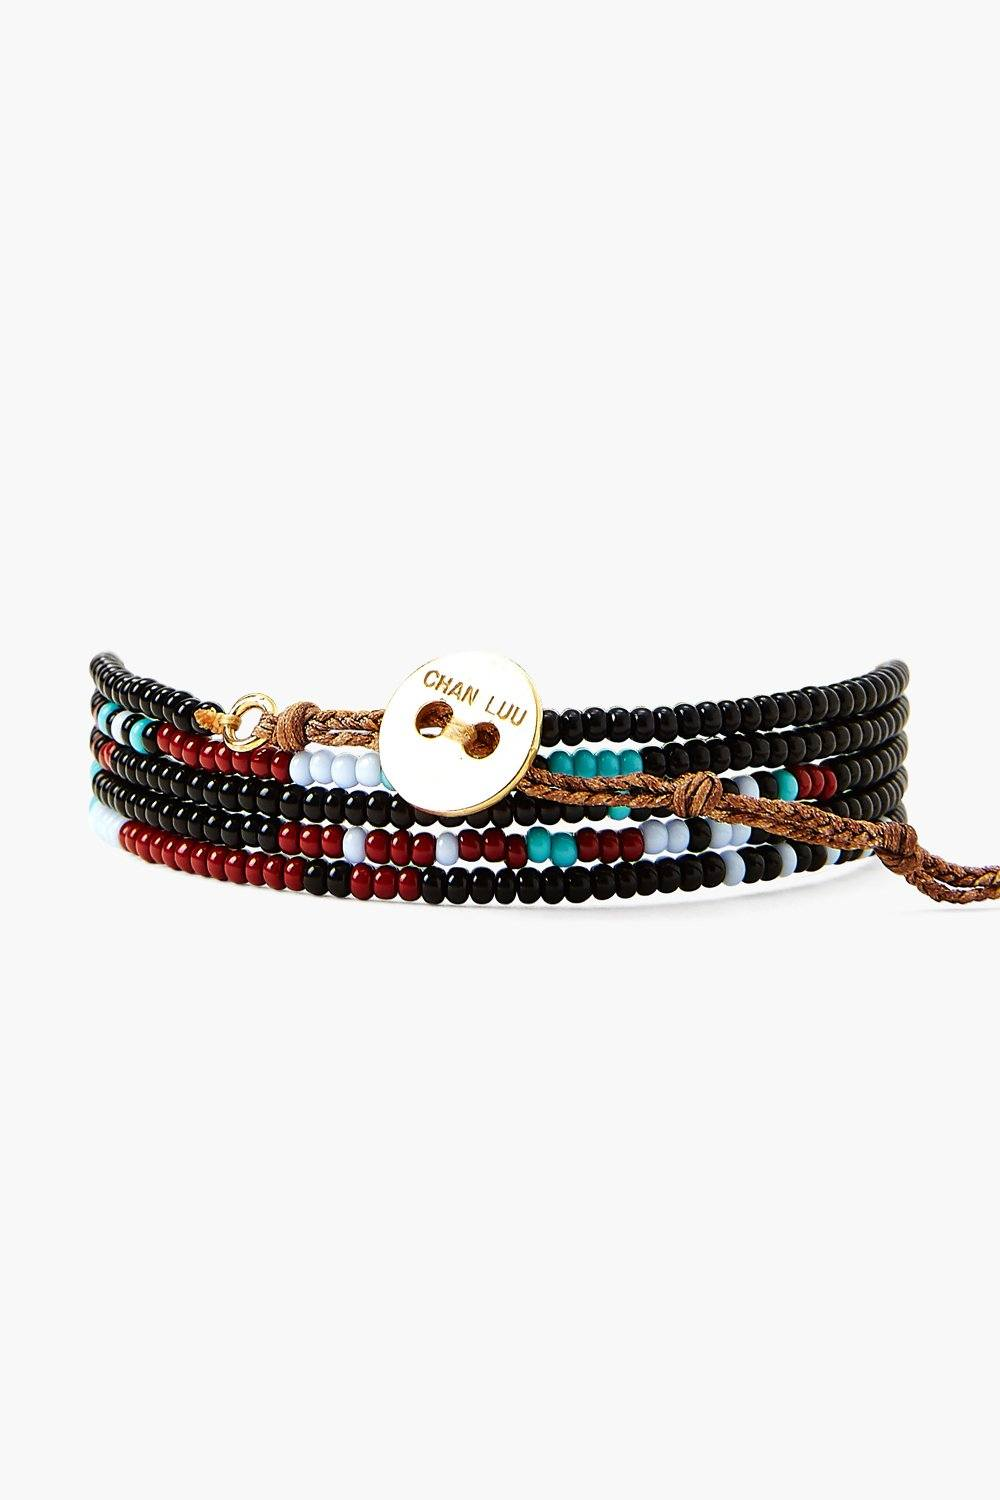 Chan Luu x Ethical Fashion Initiative Black Beaded Naked Wrap Bracelet